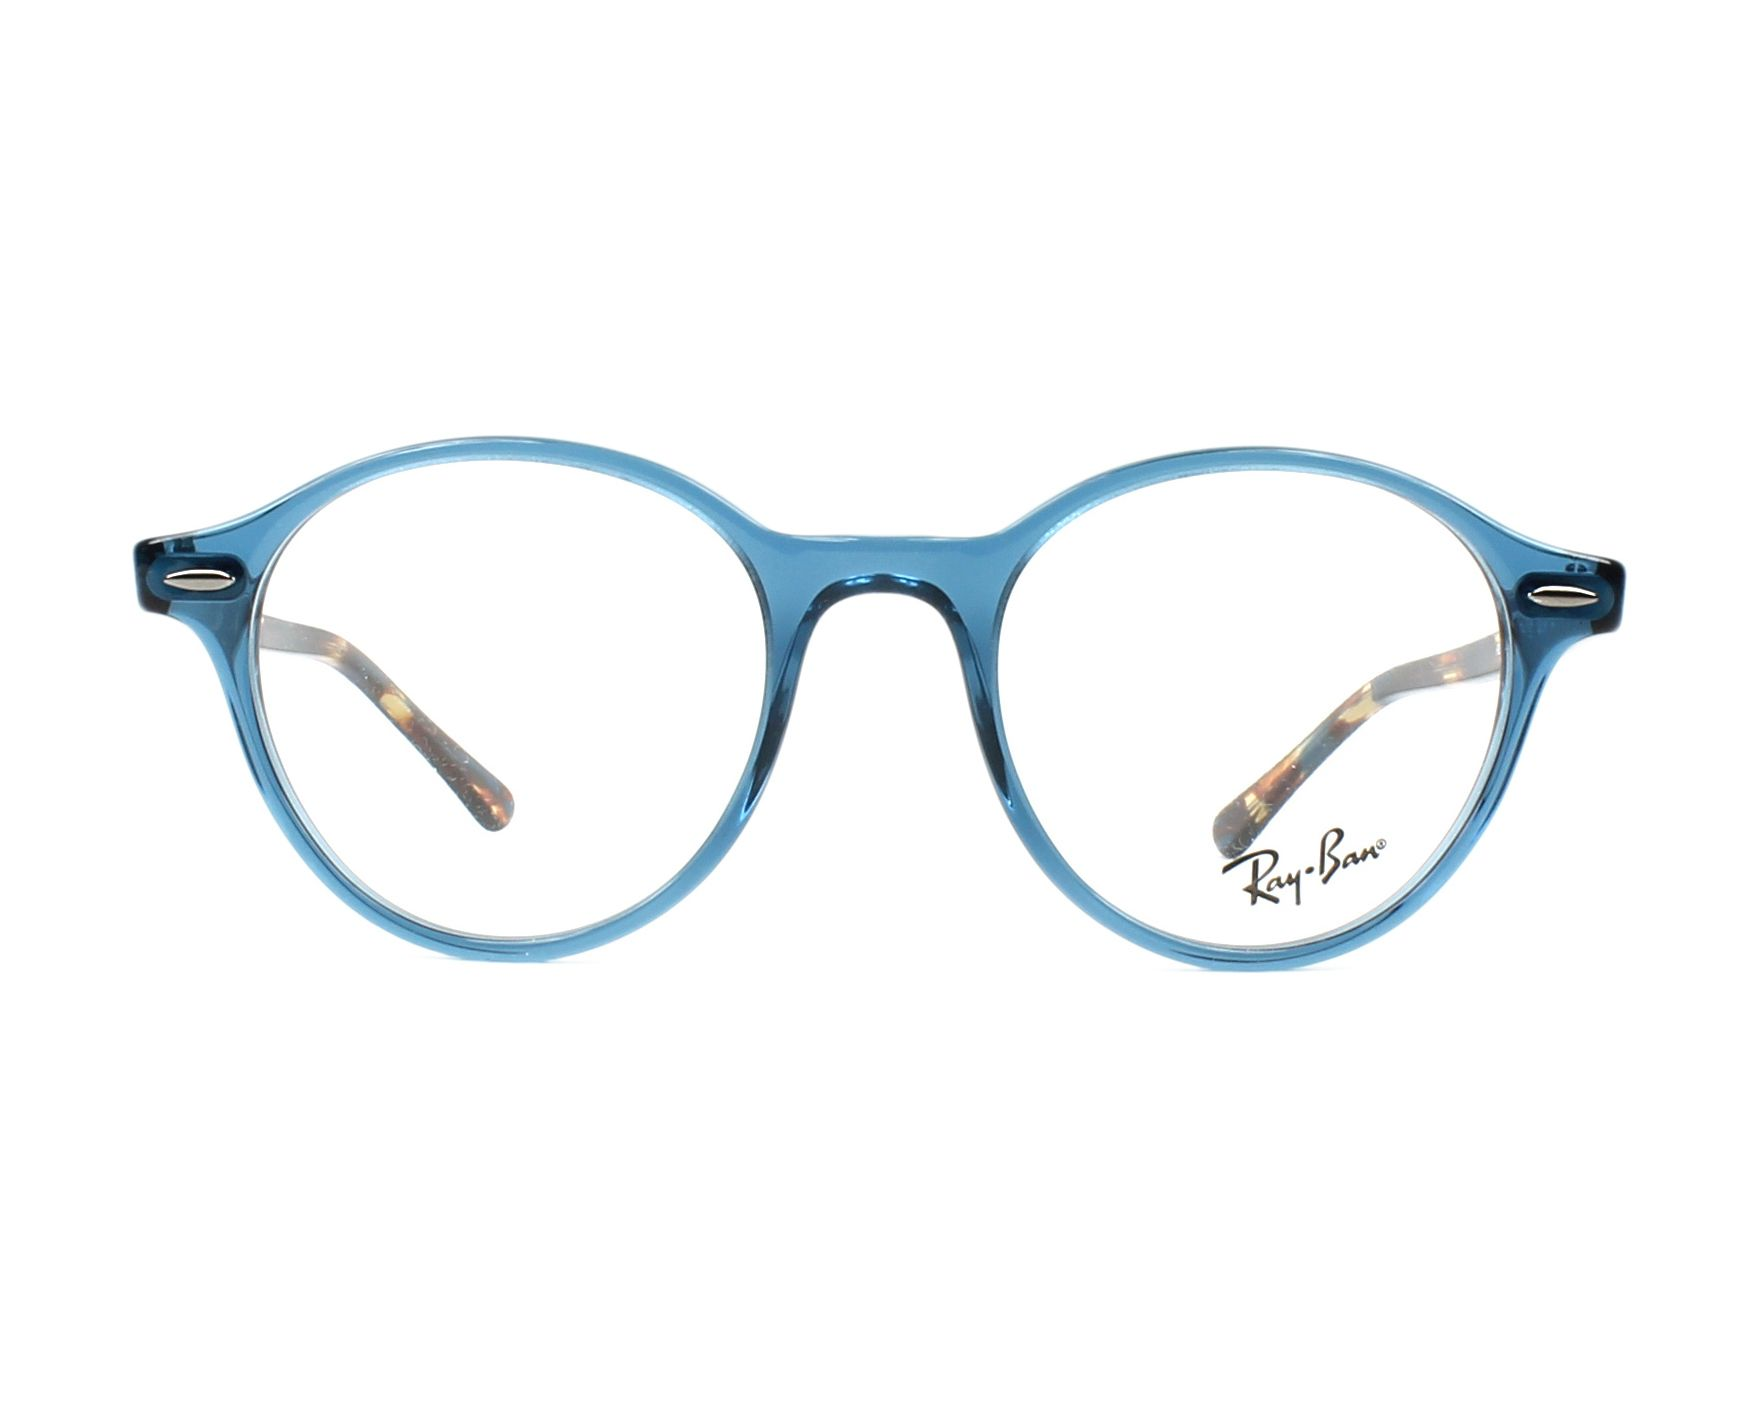 91a4055352a eyeglasses Ray-Ban RX-7118 8022 48-19 Blue Havana front view